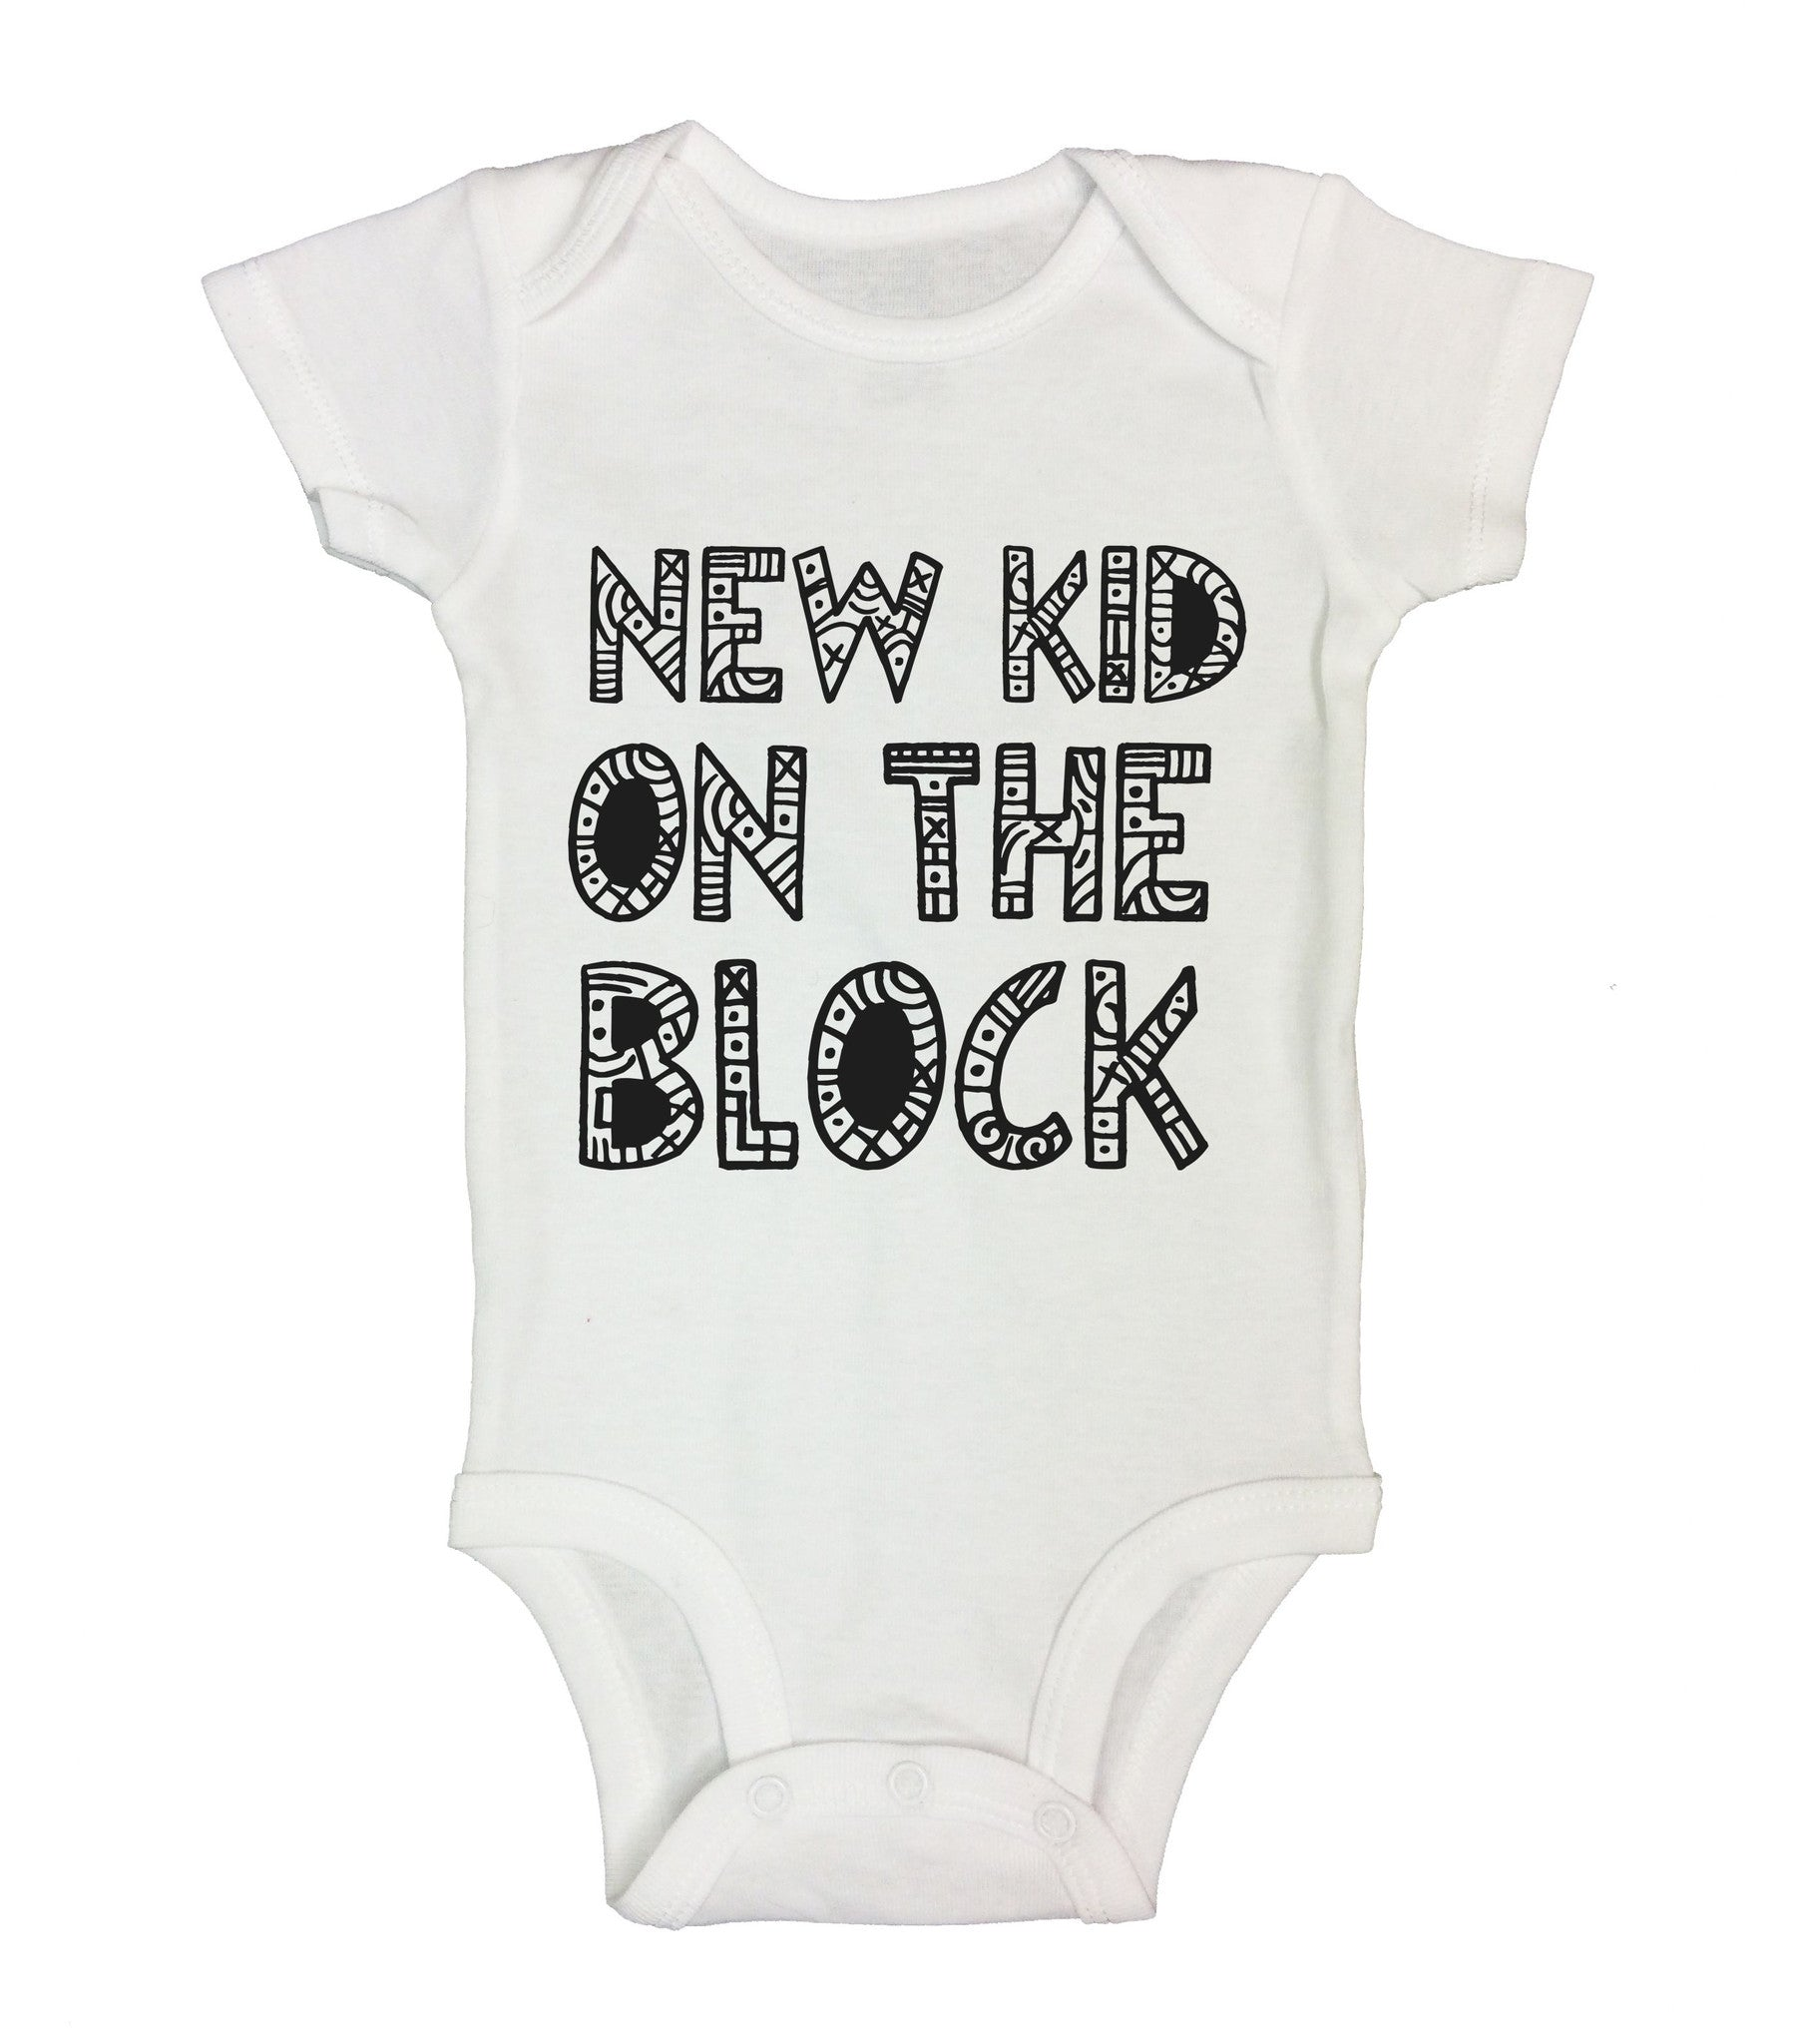 New Kid On The Block Funny Kids Onesie - B201 - Funny Shirts Tank Tops Burnouts and Triblends  - 2